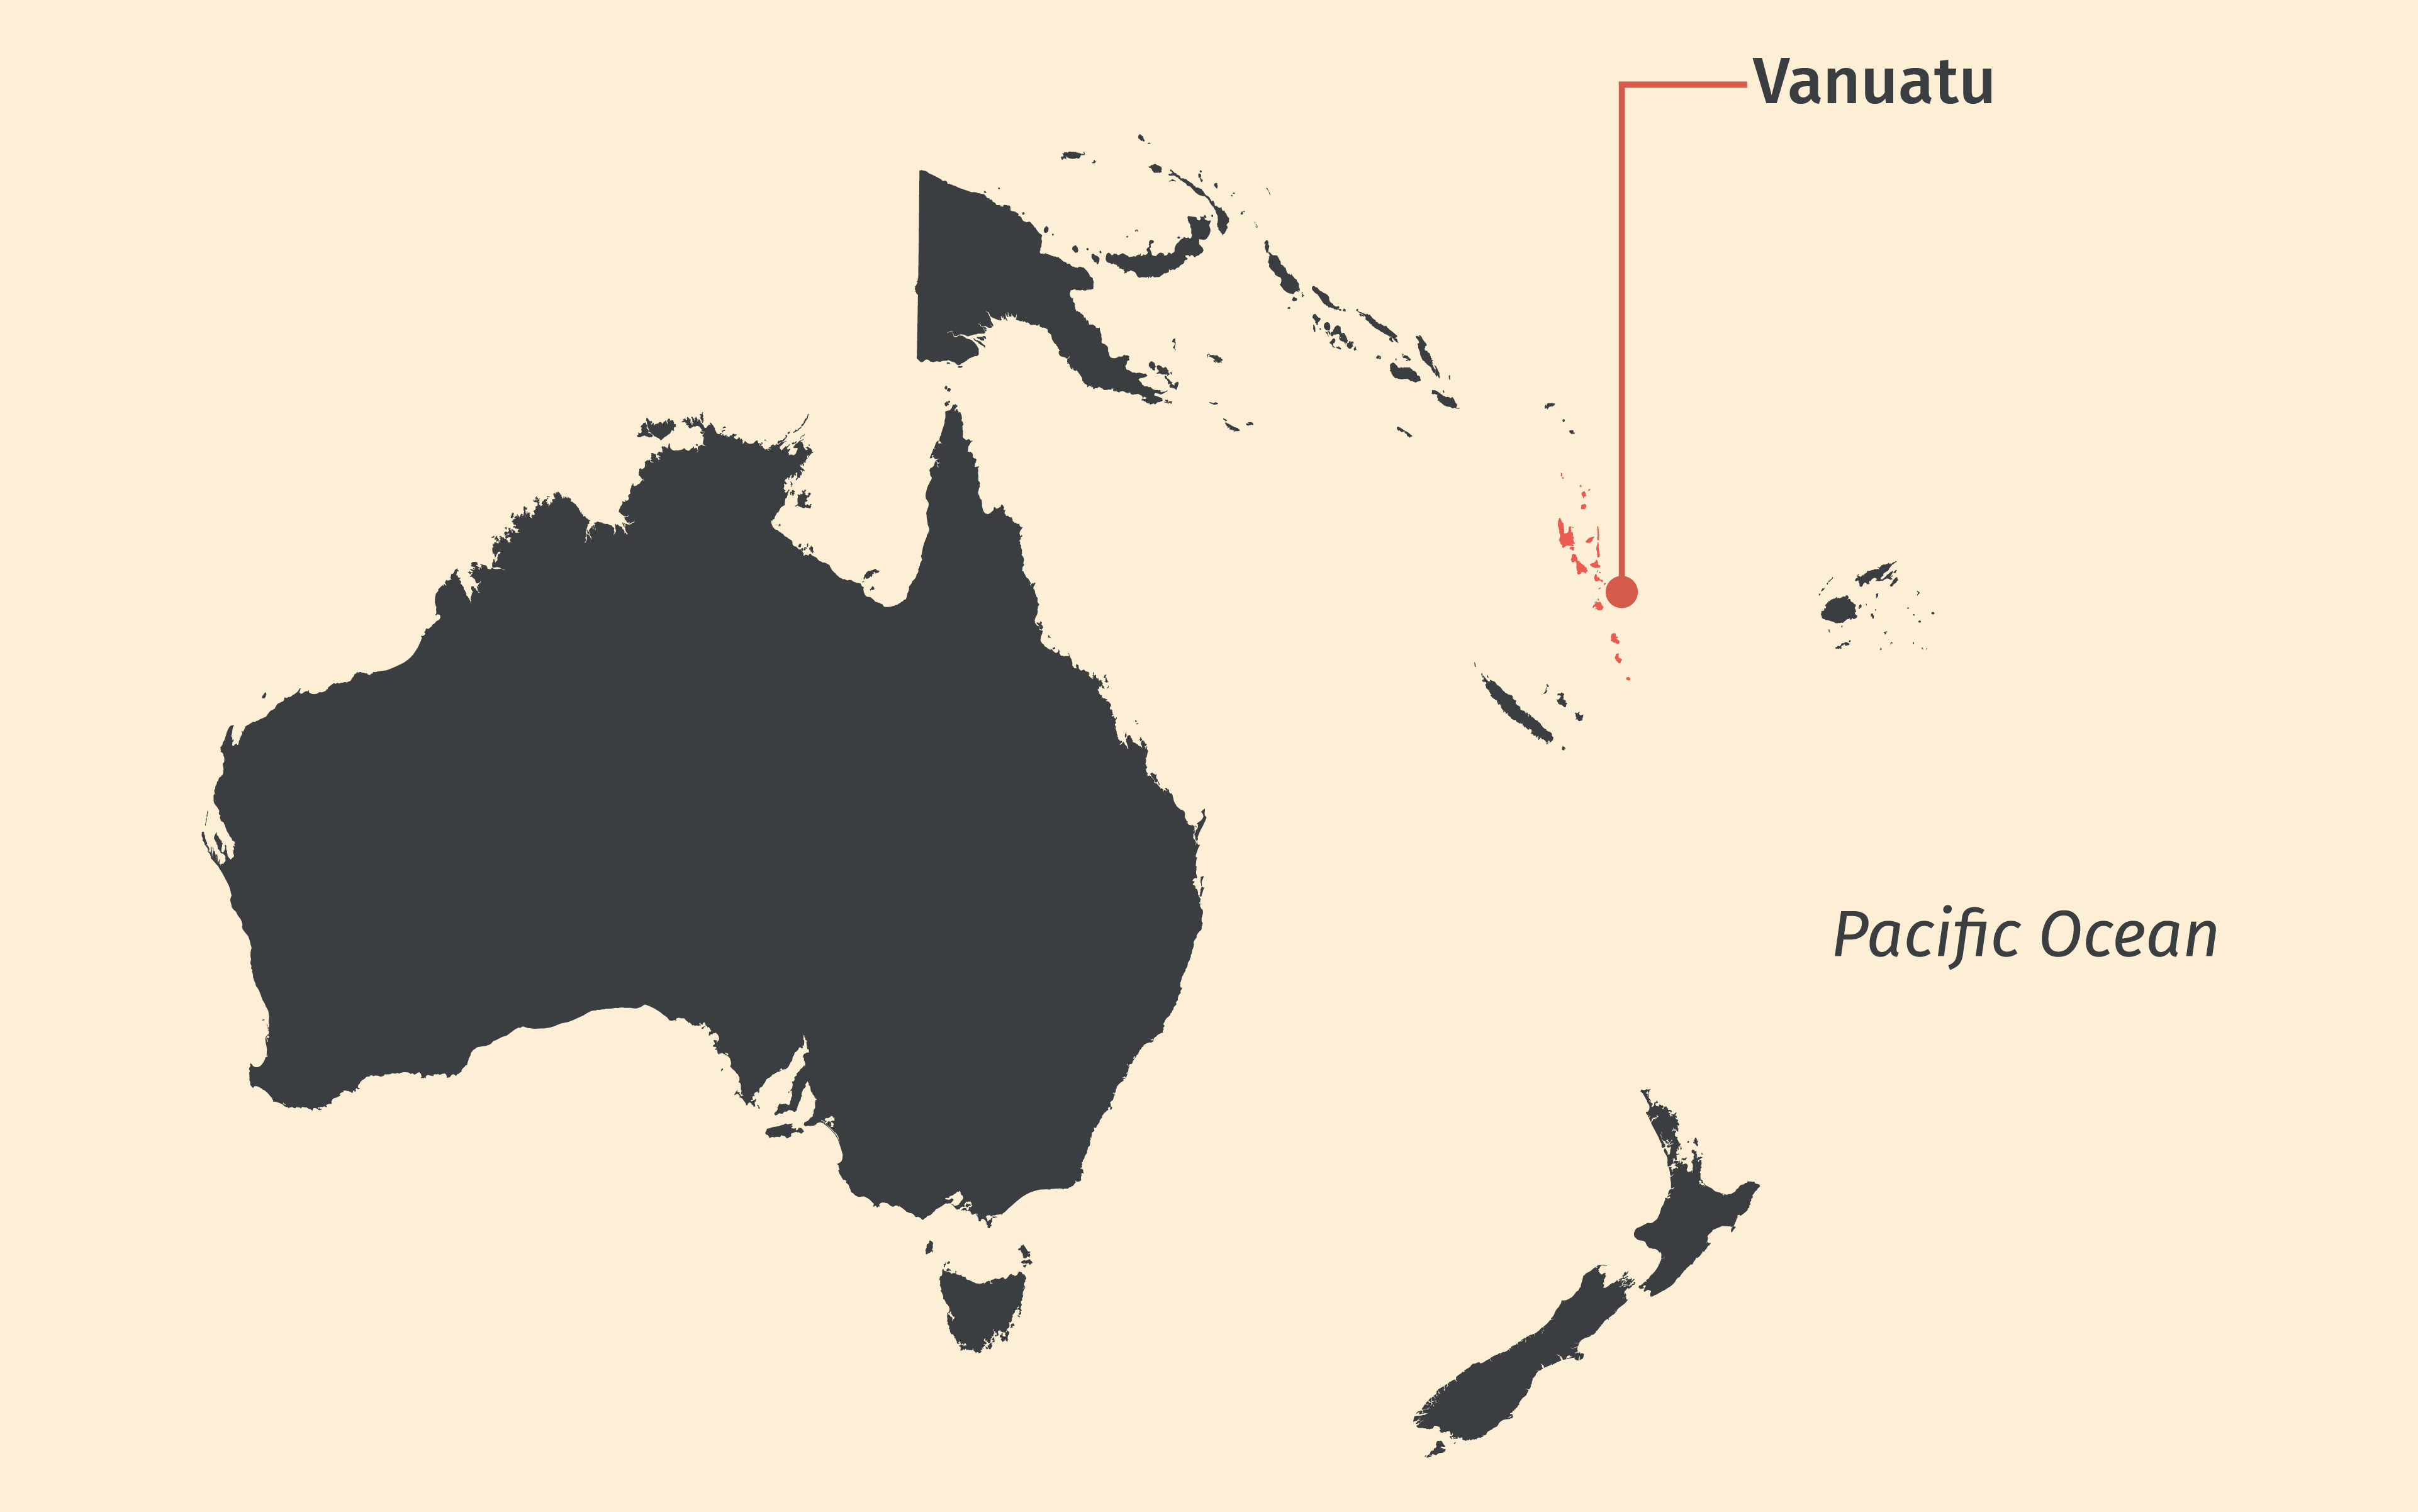 vanuatu map diabetes cannabis